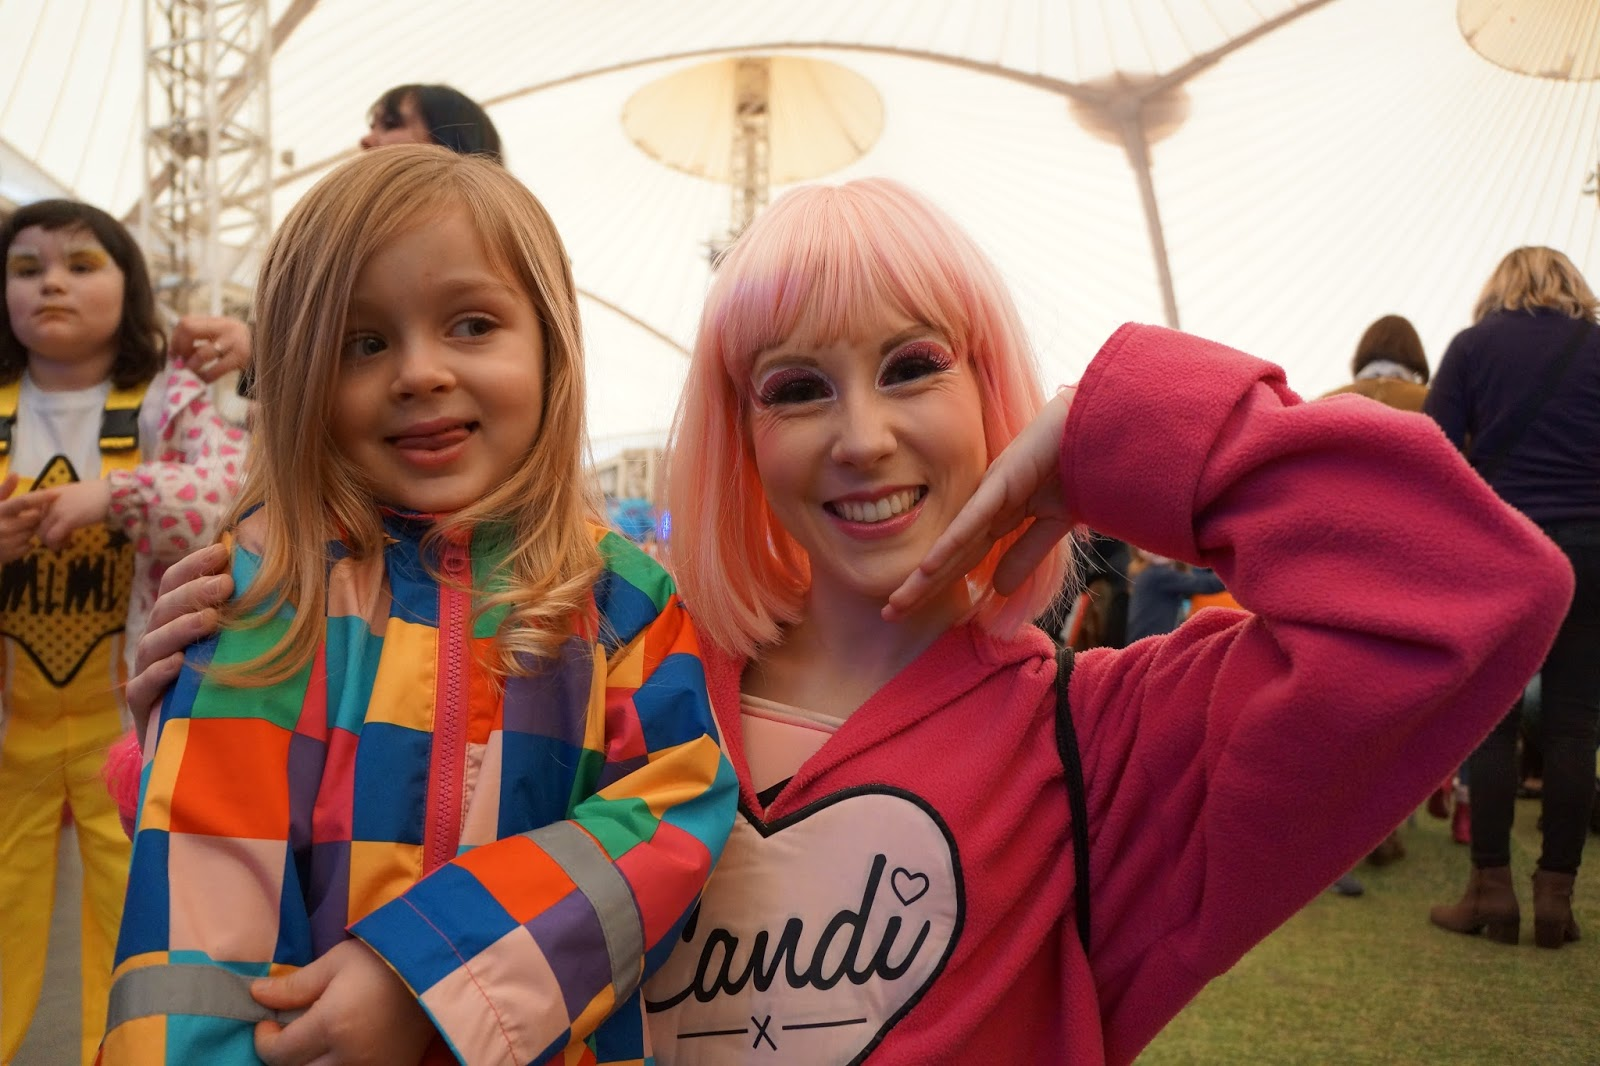 meeting candy character from skyline gang at butlins minehead